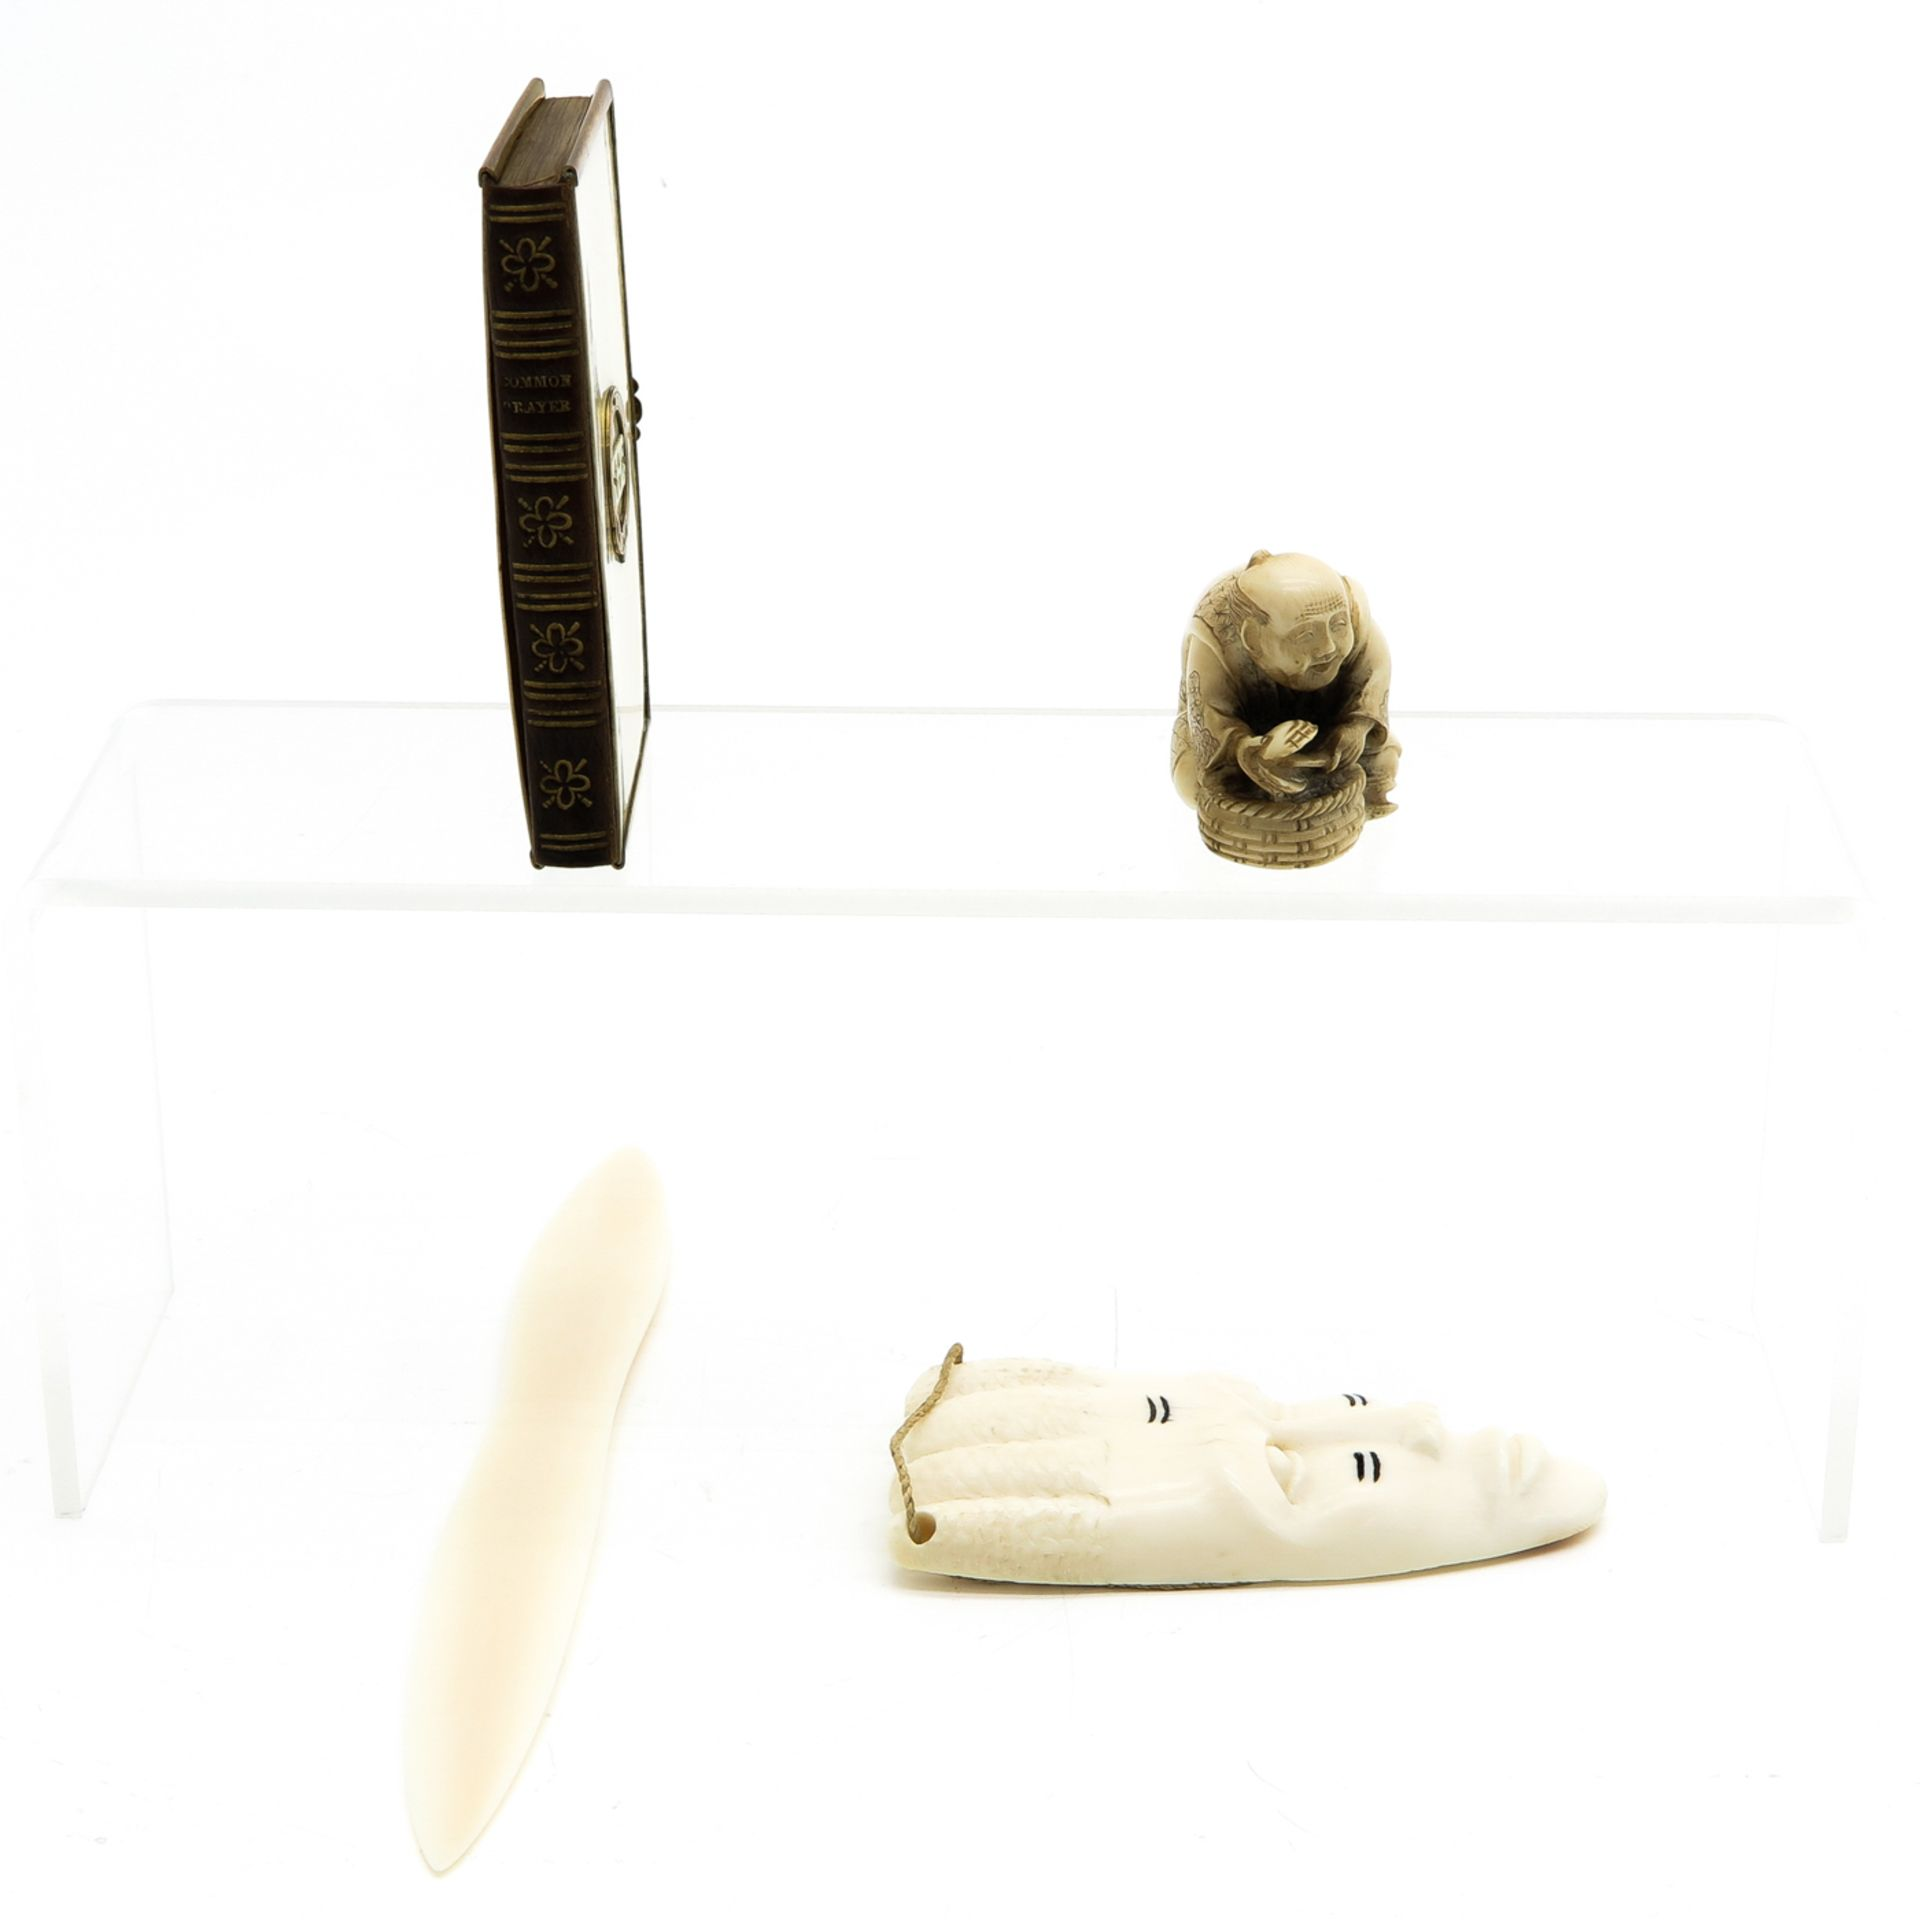 Los 1093 - A Diverse Collection of Items including Netsuke